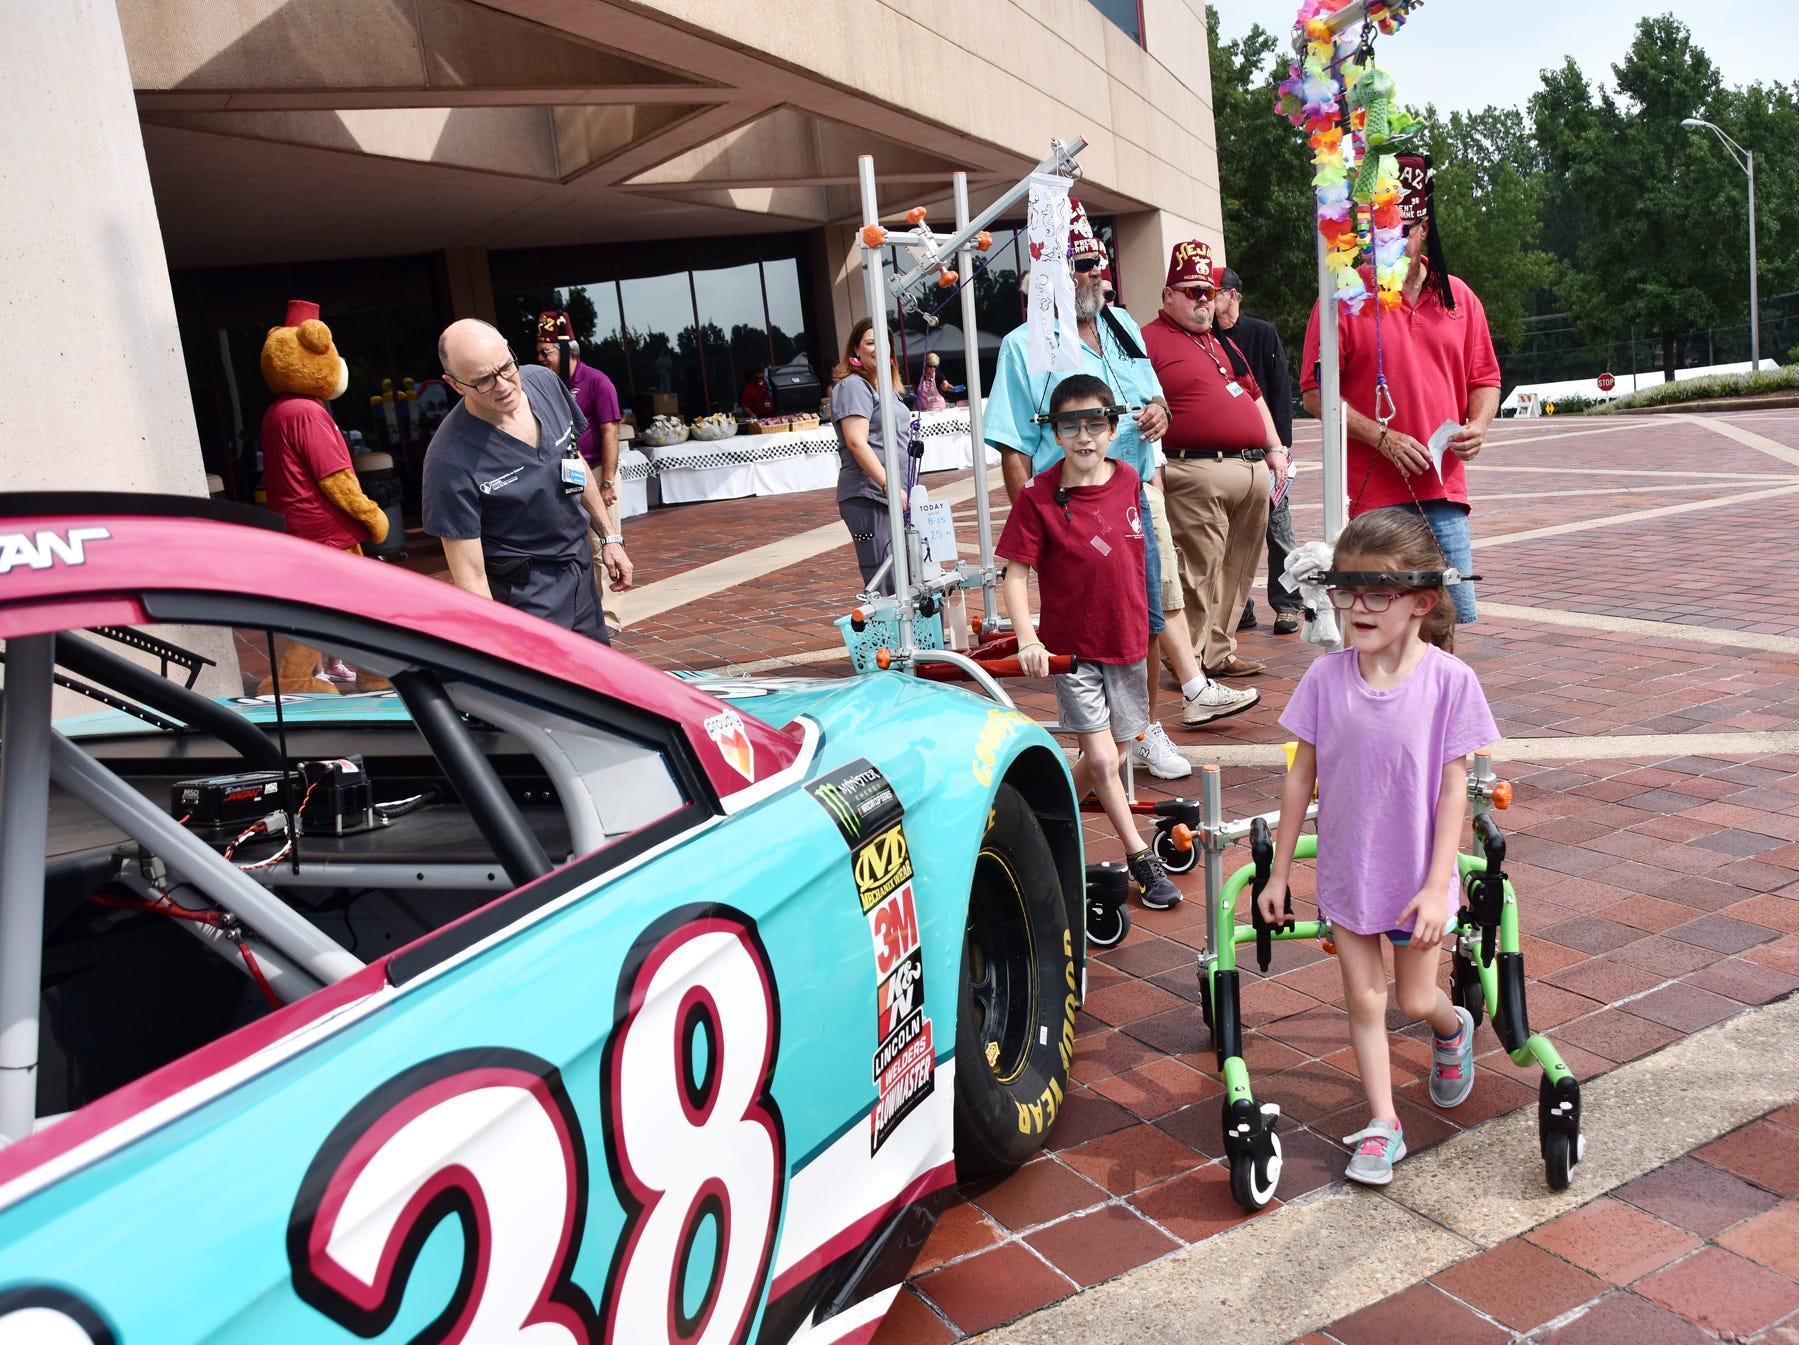 Children walk towards a race car at the Shriners Hospital for Children in Greenville on August 15, 2018.